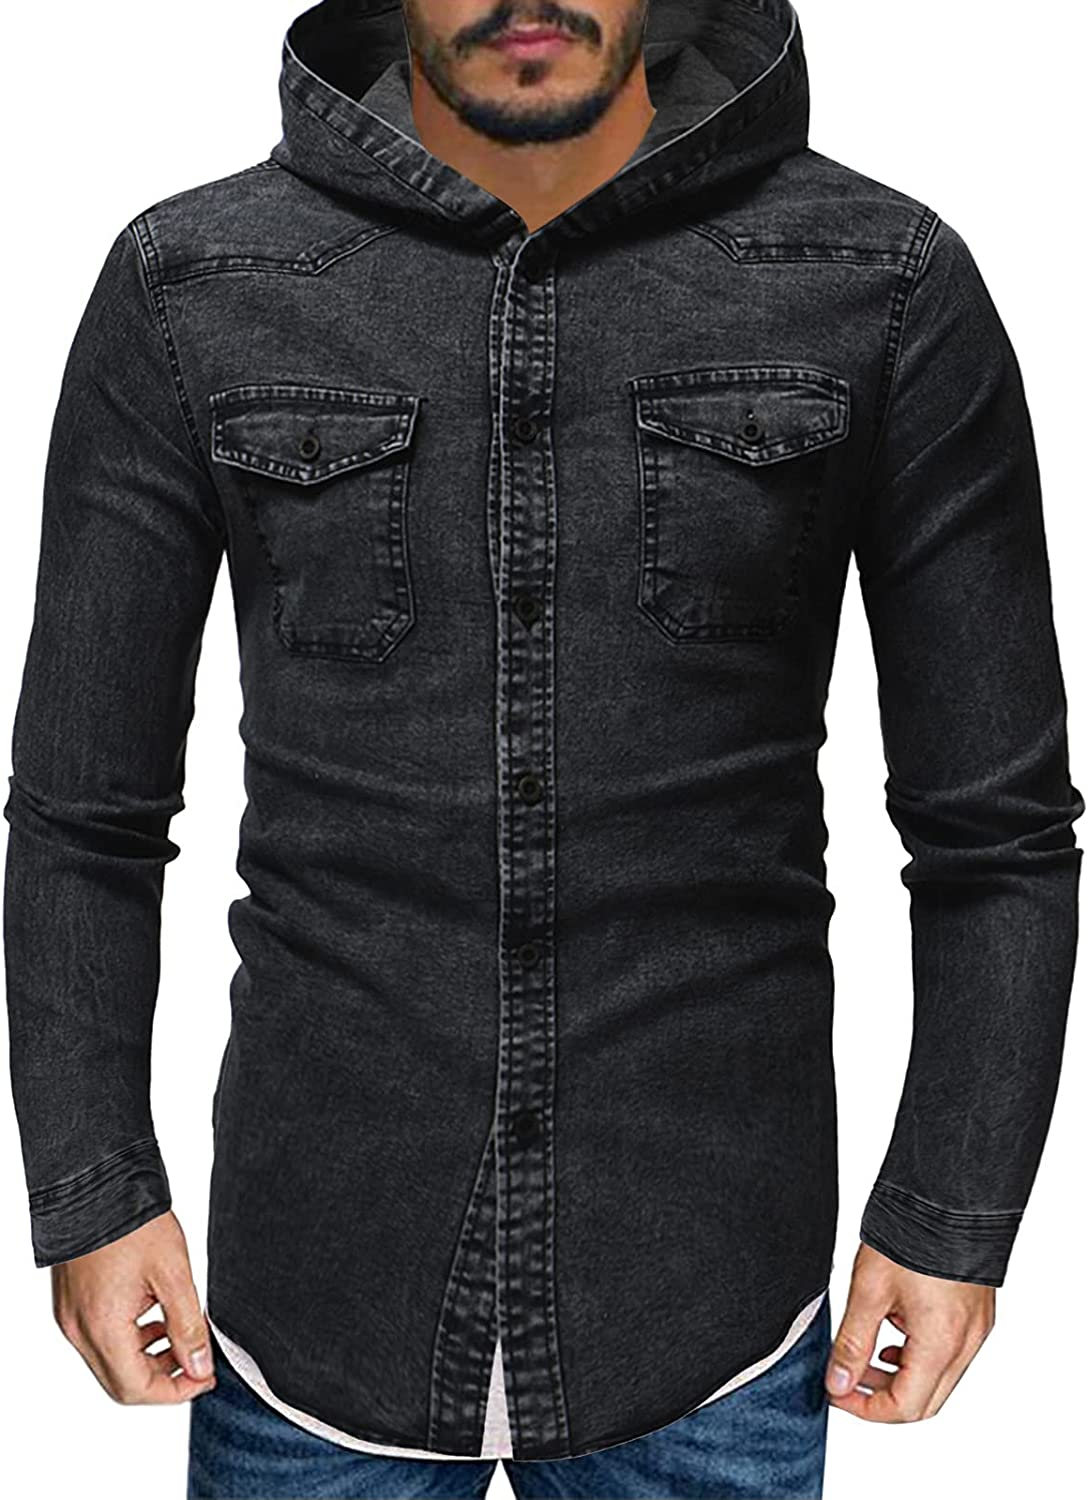 Hugogo Mens Denim New mail order Jackets Hoodies Button Brand Cheap Sale Venue Pocket with Long Sleeve